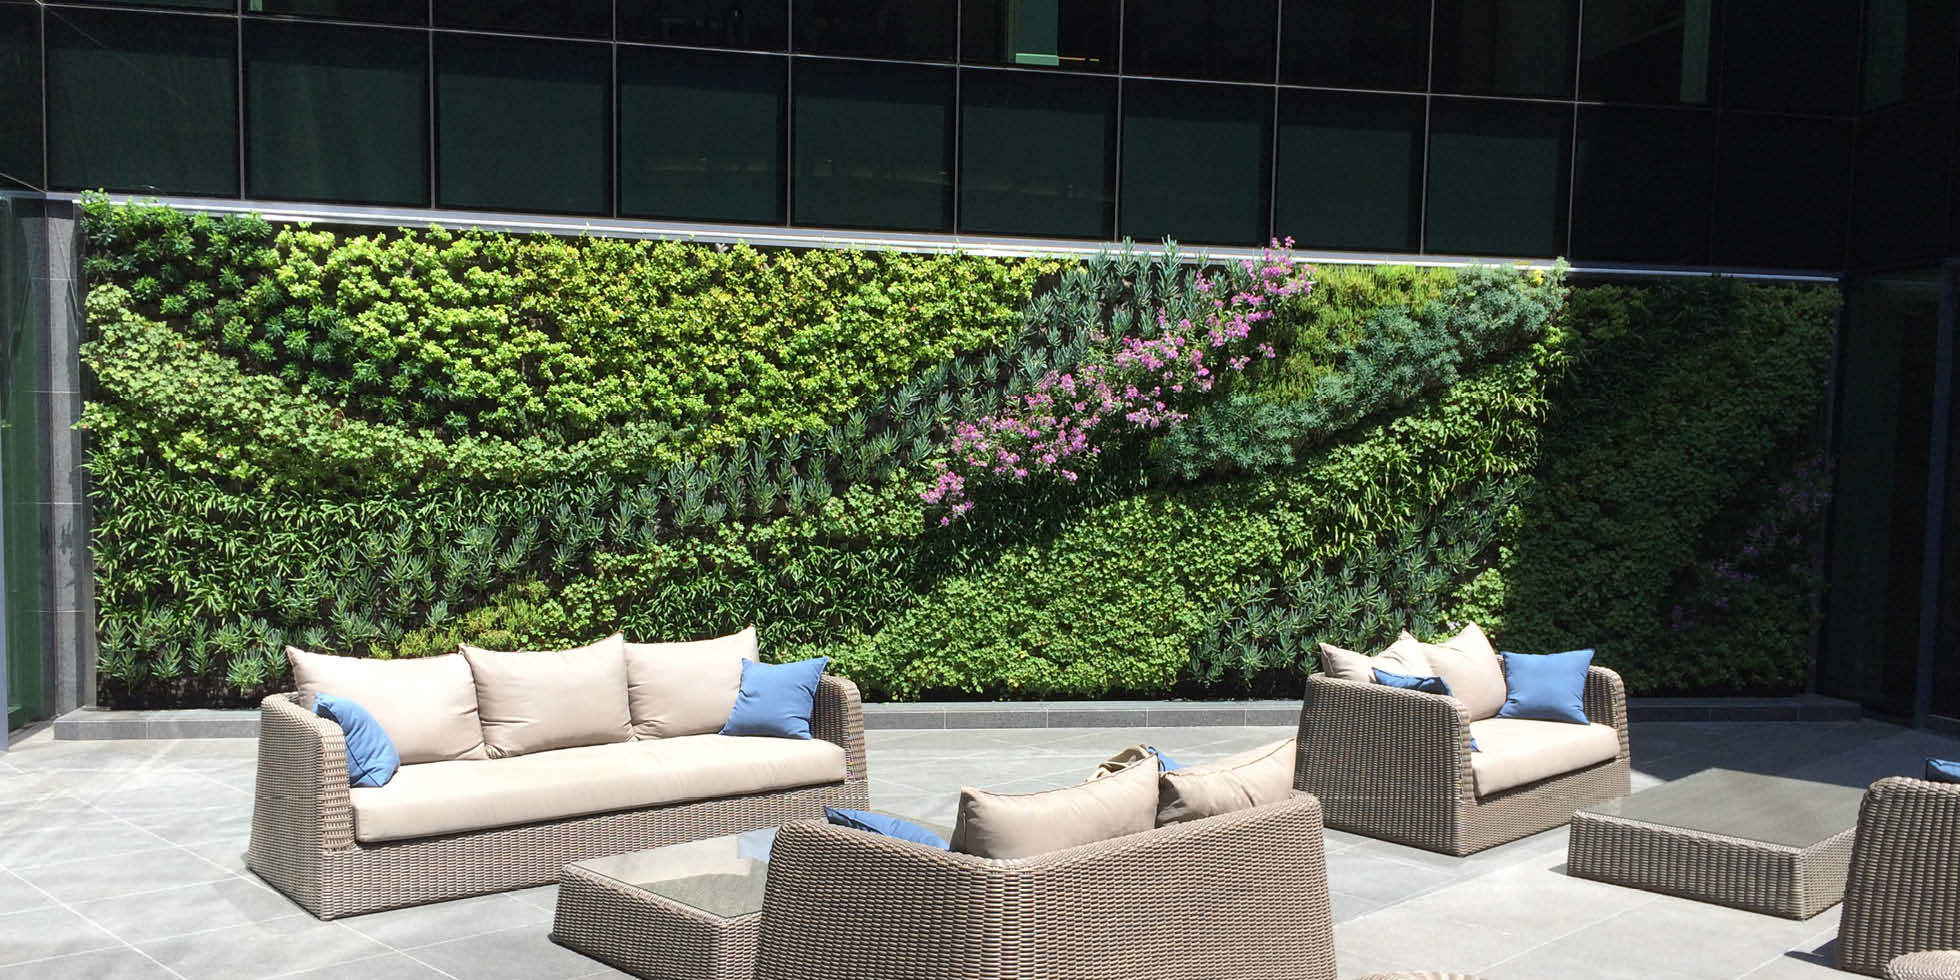 Kennedy Wilson Living Wall by Habitat Horticulture - View 2